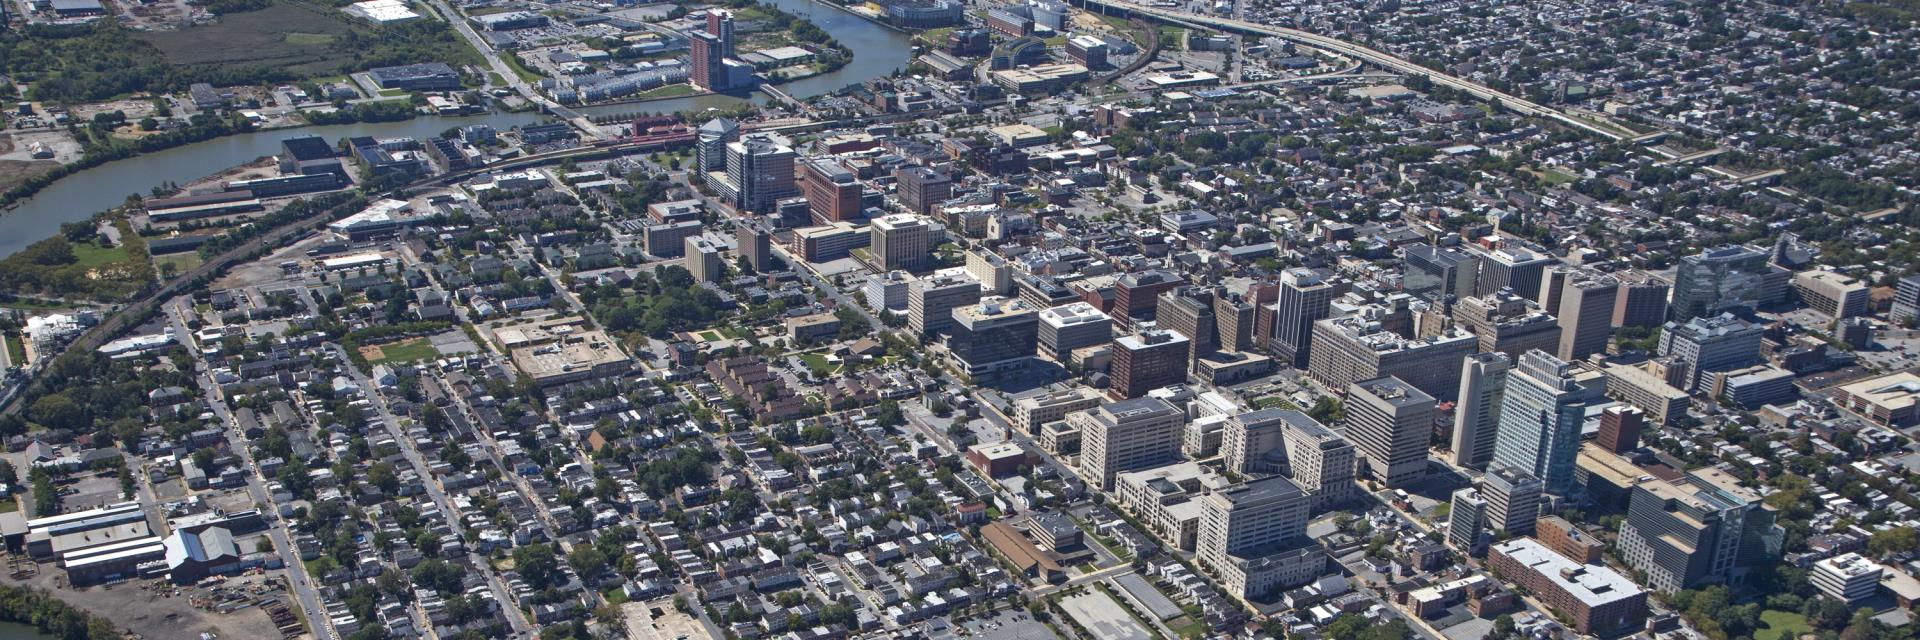 Aerial view of the City of Wilmington